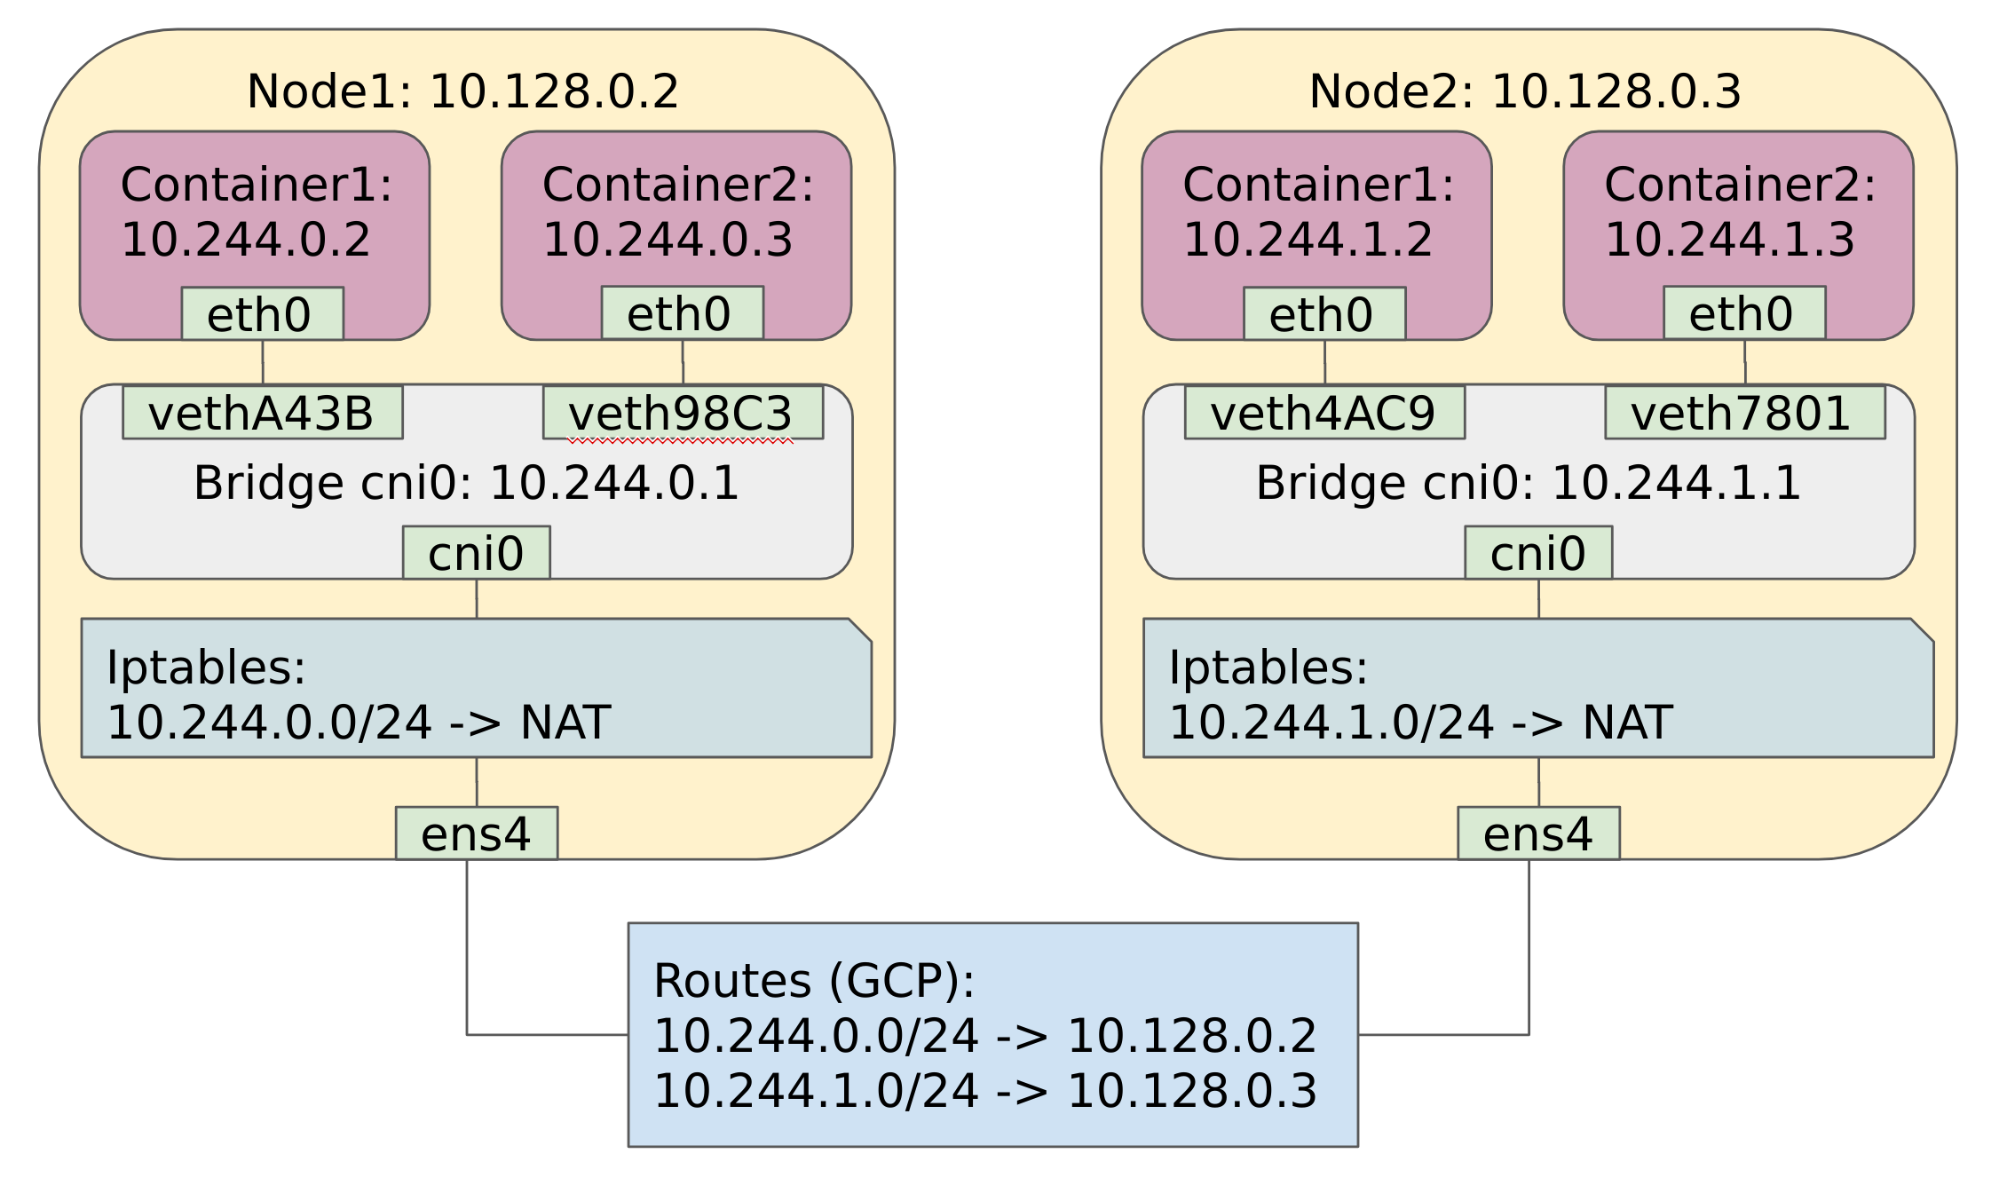 Kubernetes Networking: How to Write Your Own CNI Plug-in